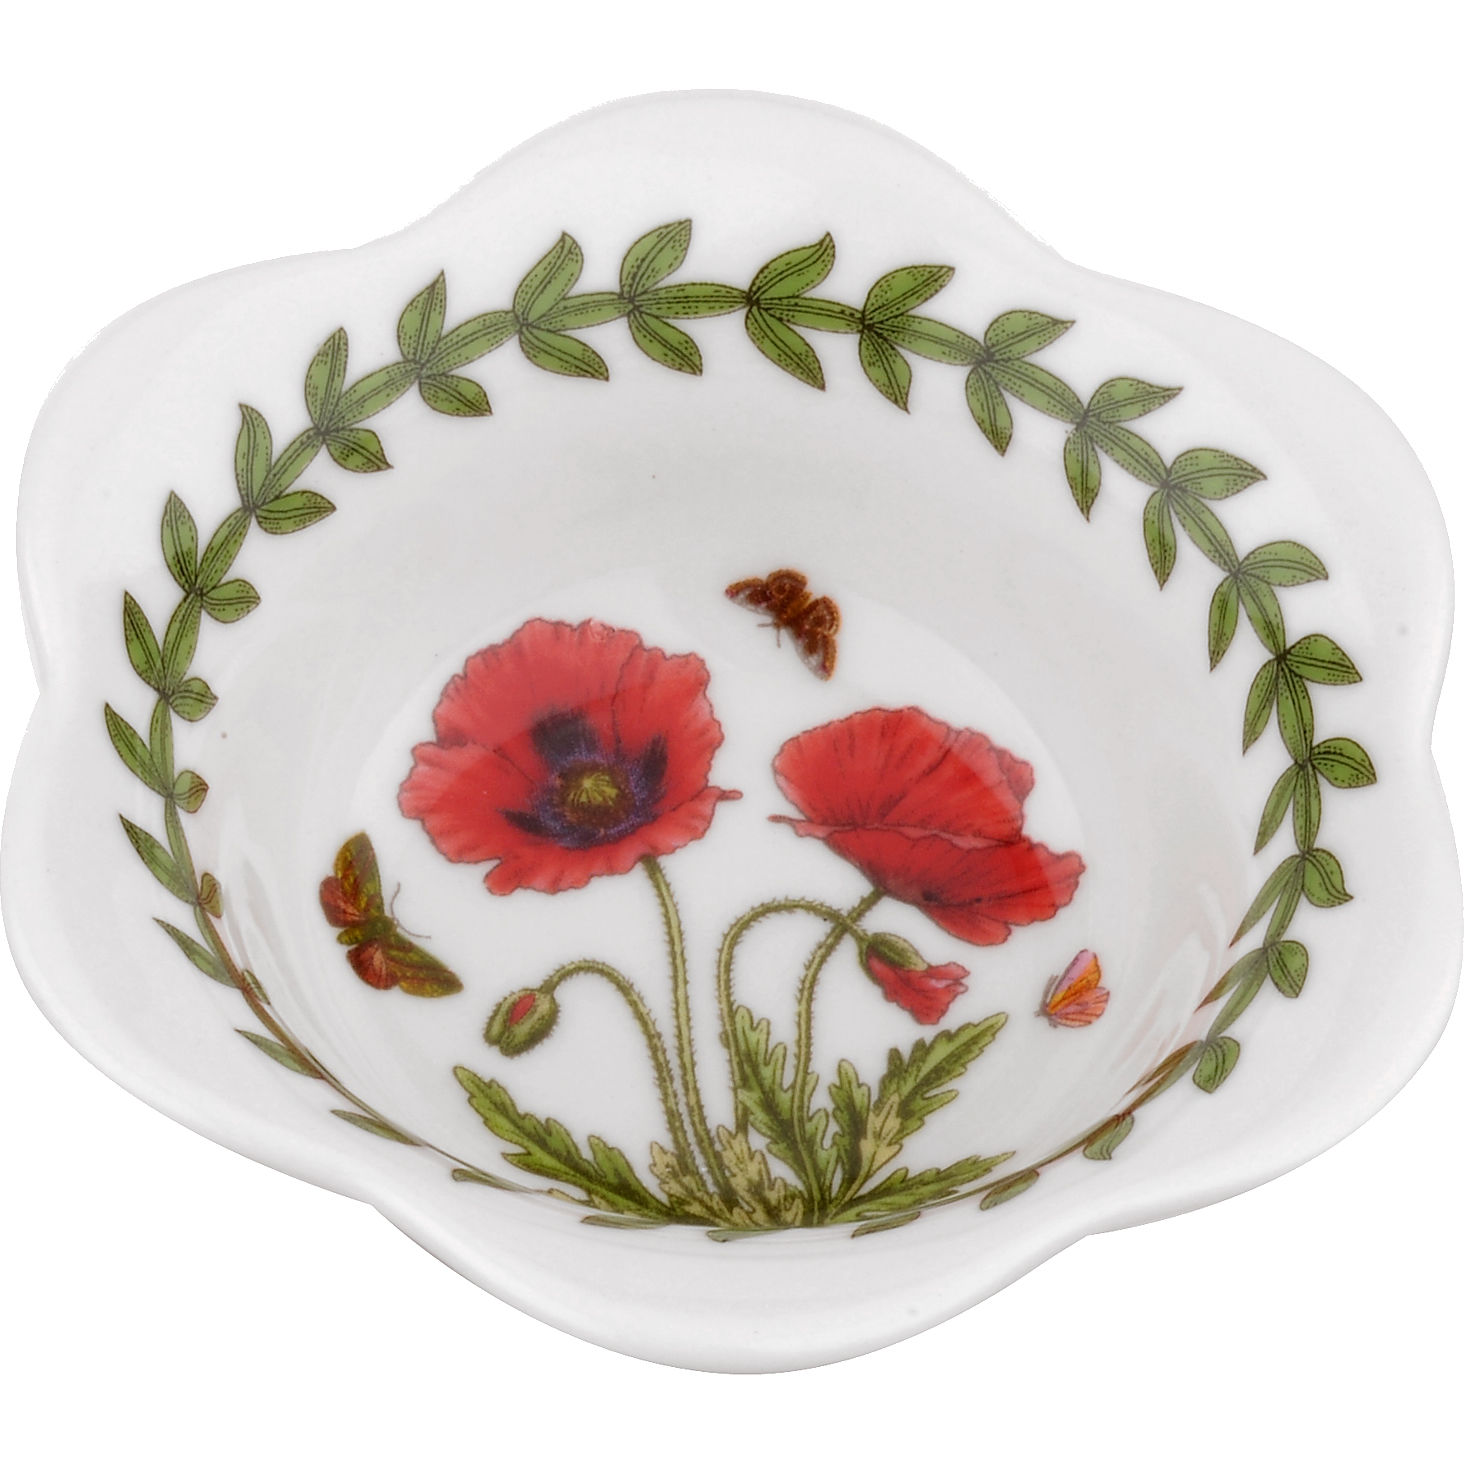 Portmeirion Botanic Garden Dip Bowl Set Of 2 Poppy